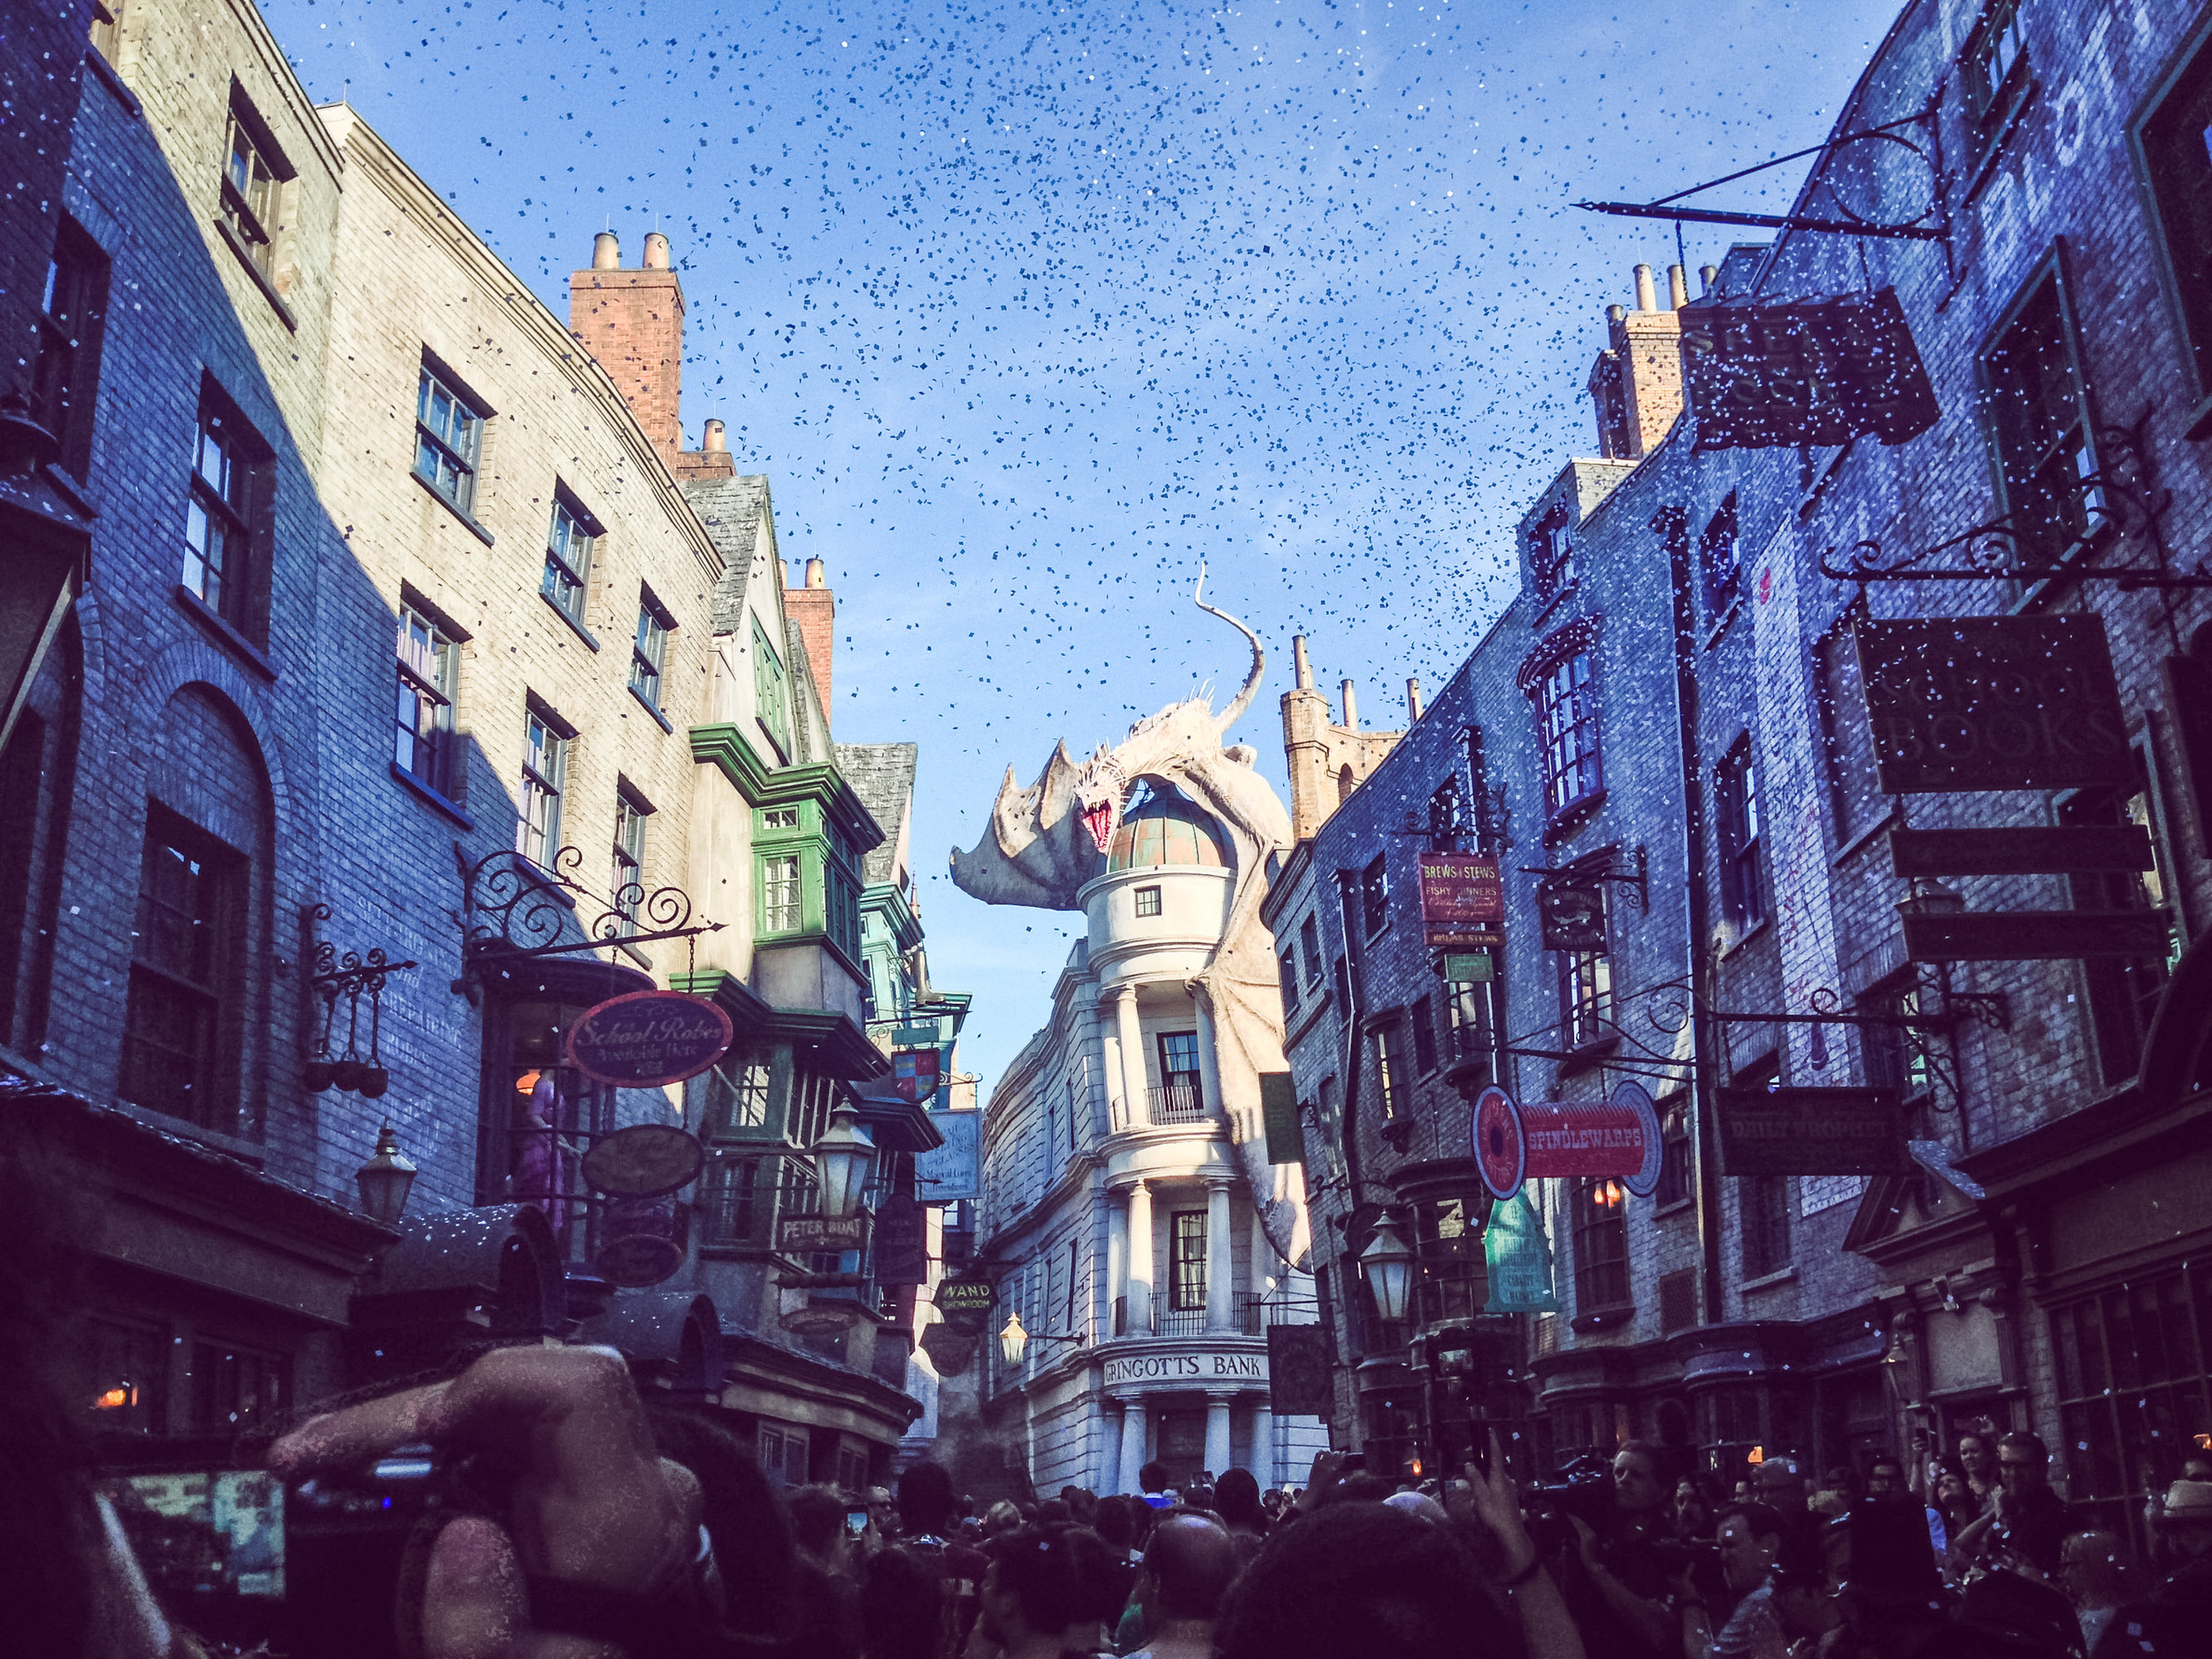 "july 8th, 2014.    no time for sleeping. best friends. hundreds of die hard harry potter fans cheering at the universal gates at 5am. sprinting through the park to reach london first. anticipation. owls in your tummy. hedwig's theme blaring. opening ceremonies. fireworks. more running. turning that corner and seeing diagon alley for the first time. confetti. wizards clapping for you on both sides and shouting ""welcome to diagon alley!"" as you walk down a red carpet towards a fire breathing dragon. crying. weasley's wizard wheezes. more crying. escaping gringotts. bellatrix lestrange casting a spell on your cart causing you to plummet into the pits of gringotts. chills. screams. BILL WEASLEY BEING A STAR. voldemort being a sexy beast. more screaming. butter beer ice cream. knockturn alley. magic around every single corner.    i had been sad that i was missing out on the ""soft"" openings at diagon alley before this day. bitter that i didn't have the chance to see it for myself and having to look at a constant slew of pictures. it turns out that waiting for opening day was the best decision i could make. nothing, and i mean nothing, could ever compare to the feeling we all had during the opening ceremony this morning. walking into diagon alley on a red carpet, with witches and wizards clapping on either side of us, welcoming us home. confetti falling from the sky. childhood dreams coming true with every step we took, every glance we made.     today, we went down in harry potter history."